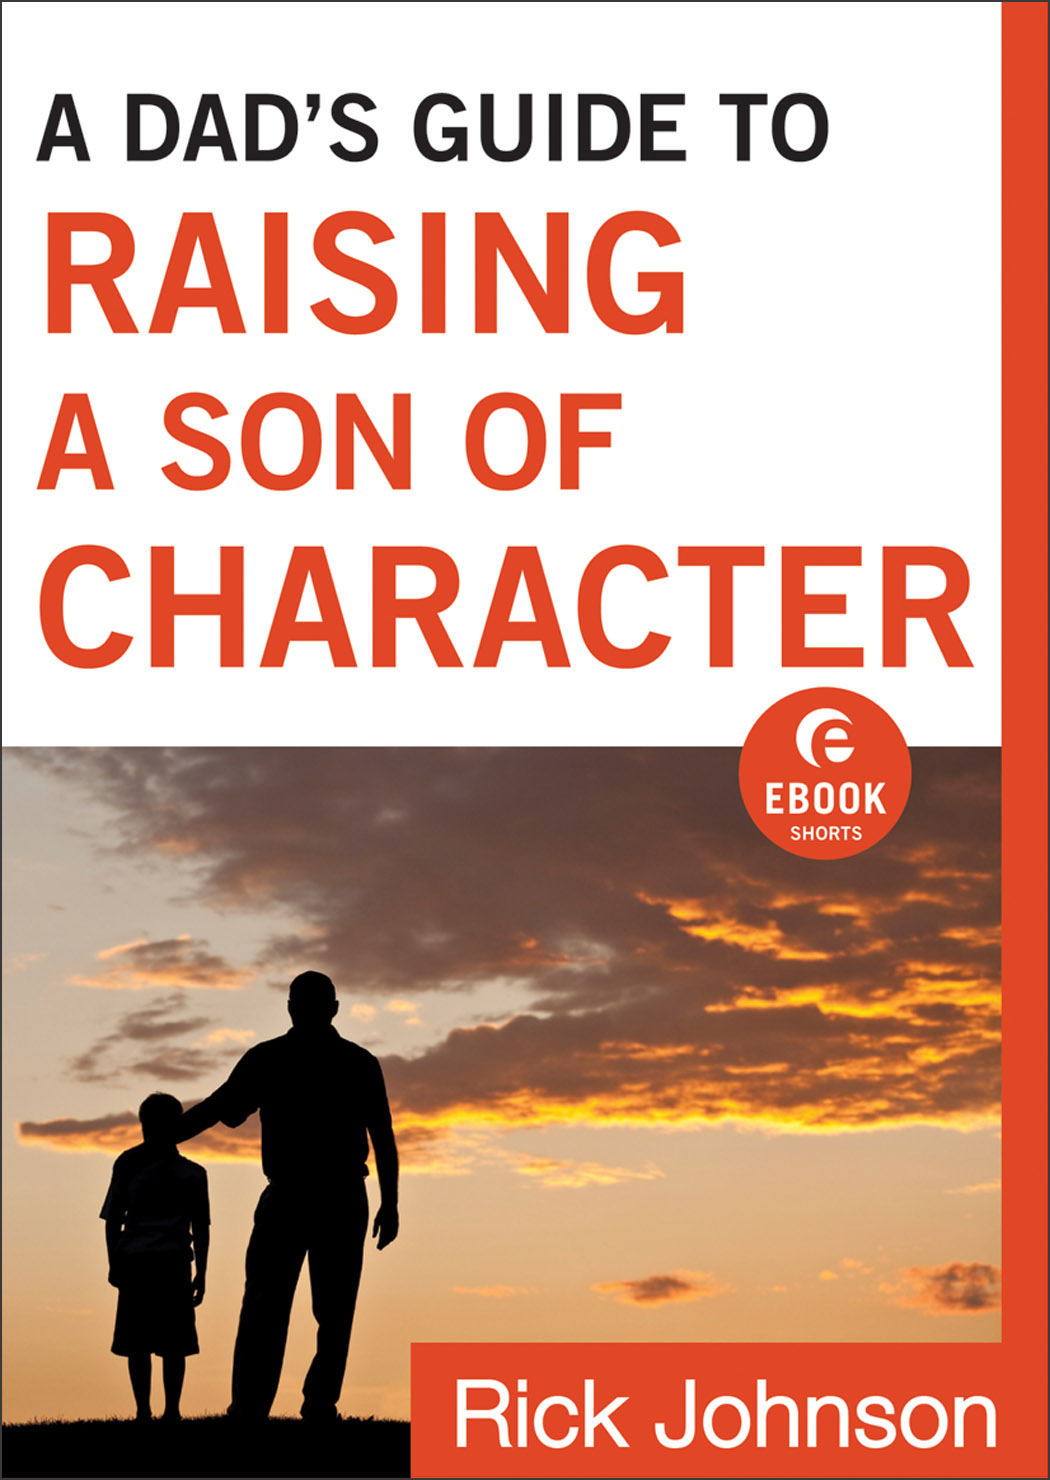 Dad's Guide to Raising a Son of Character, A (Ebook Shorts)